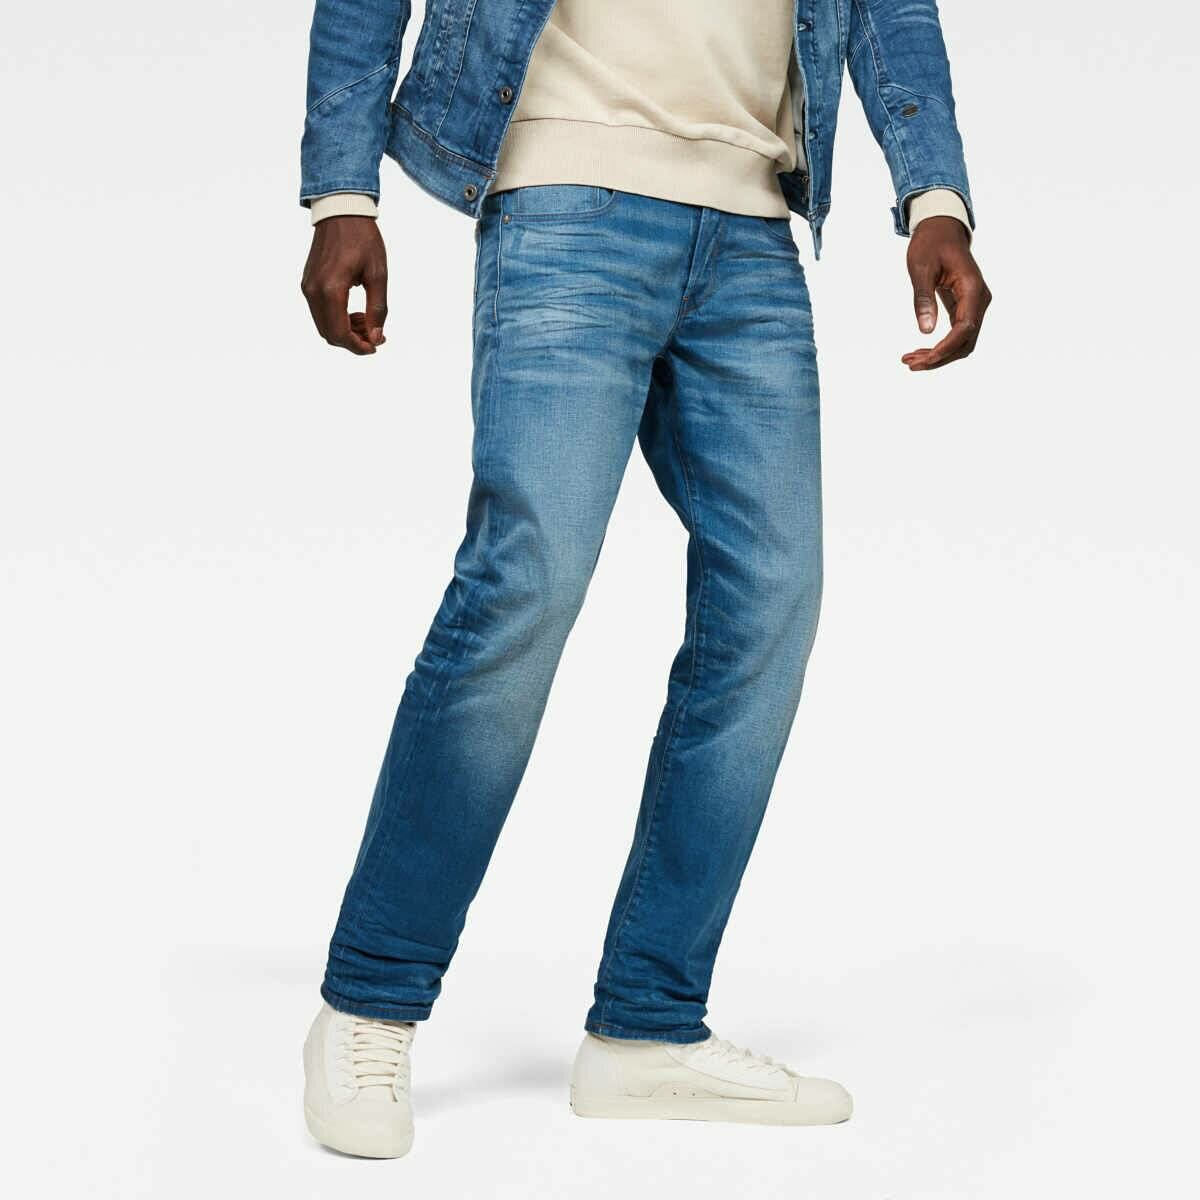 Mens Clothing Outfits Inspiration Style